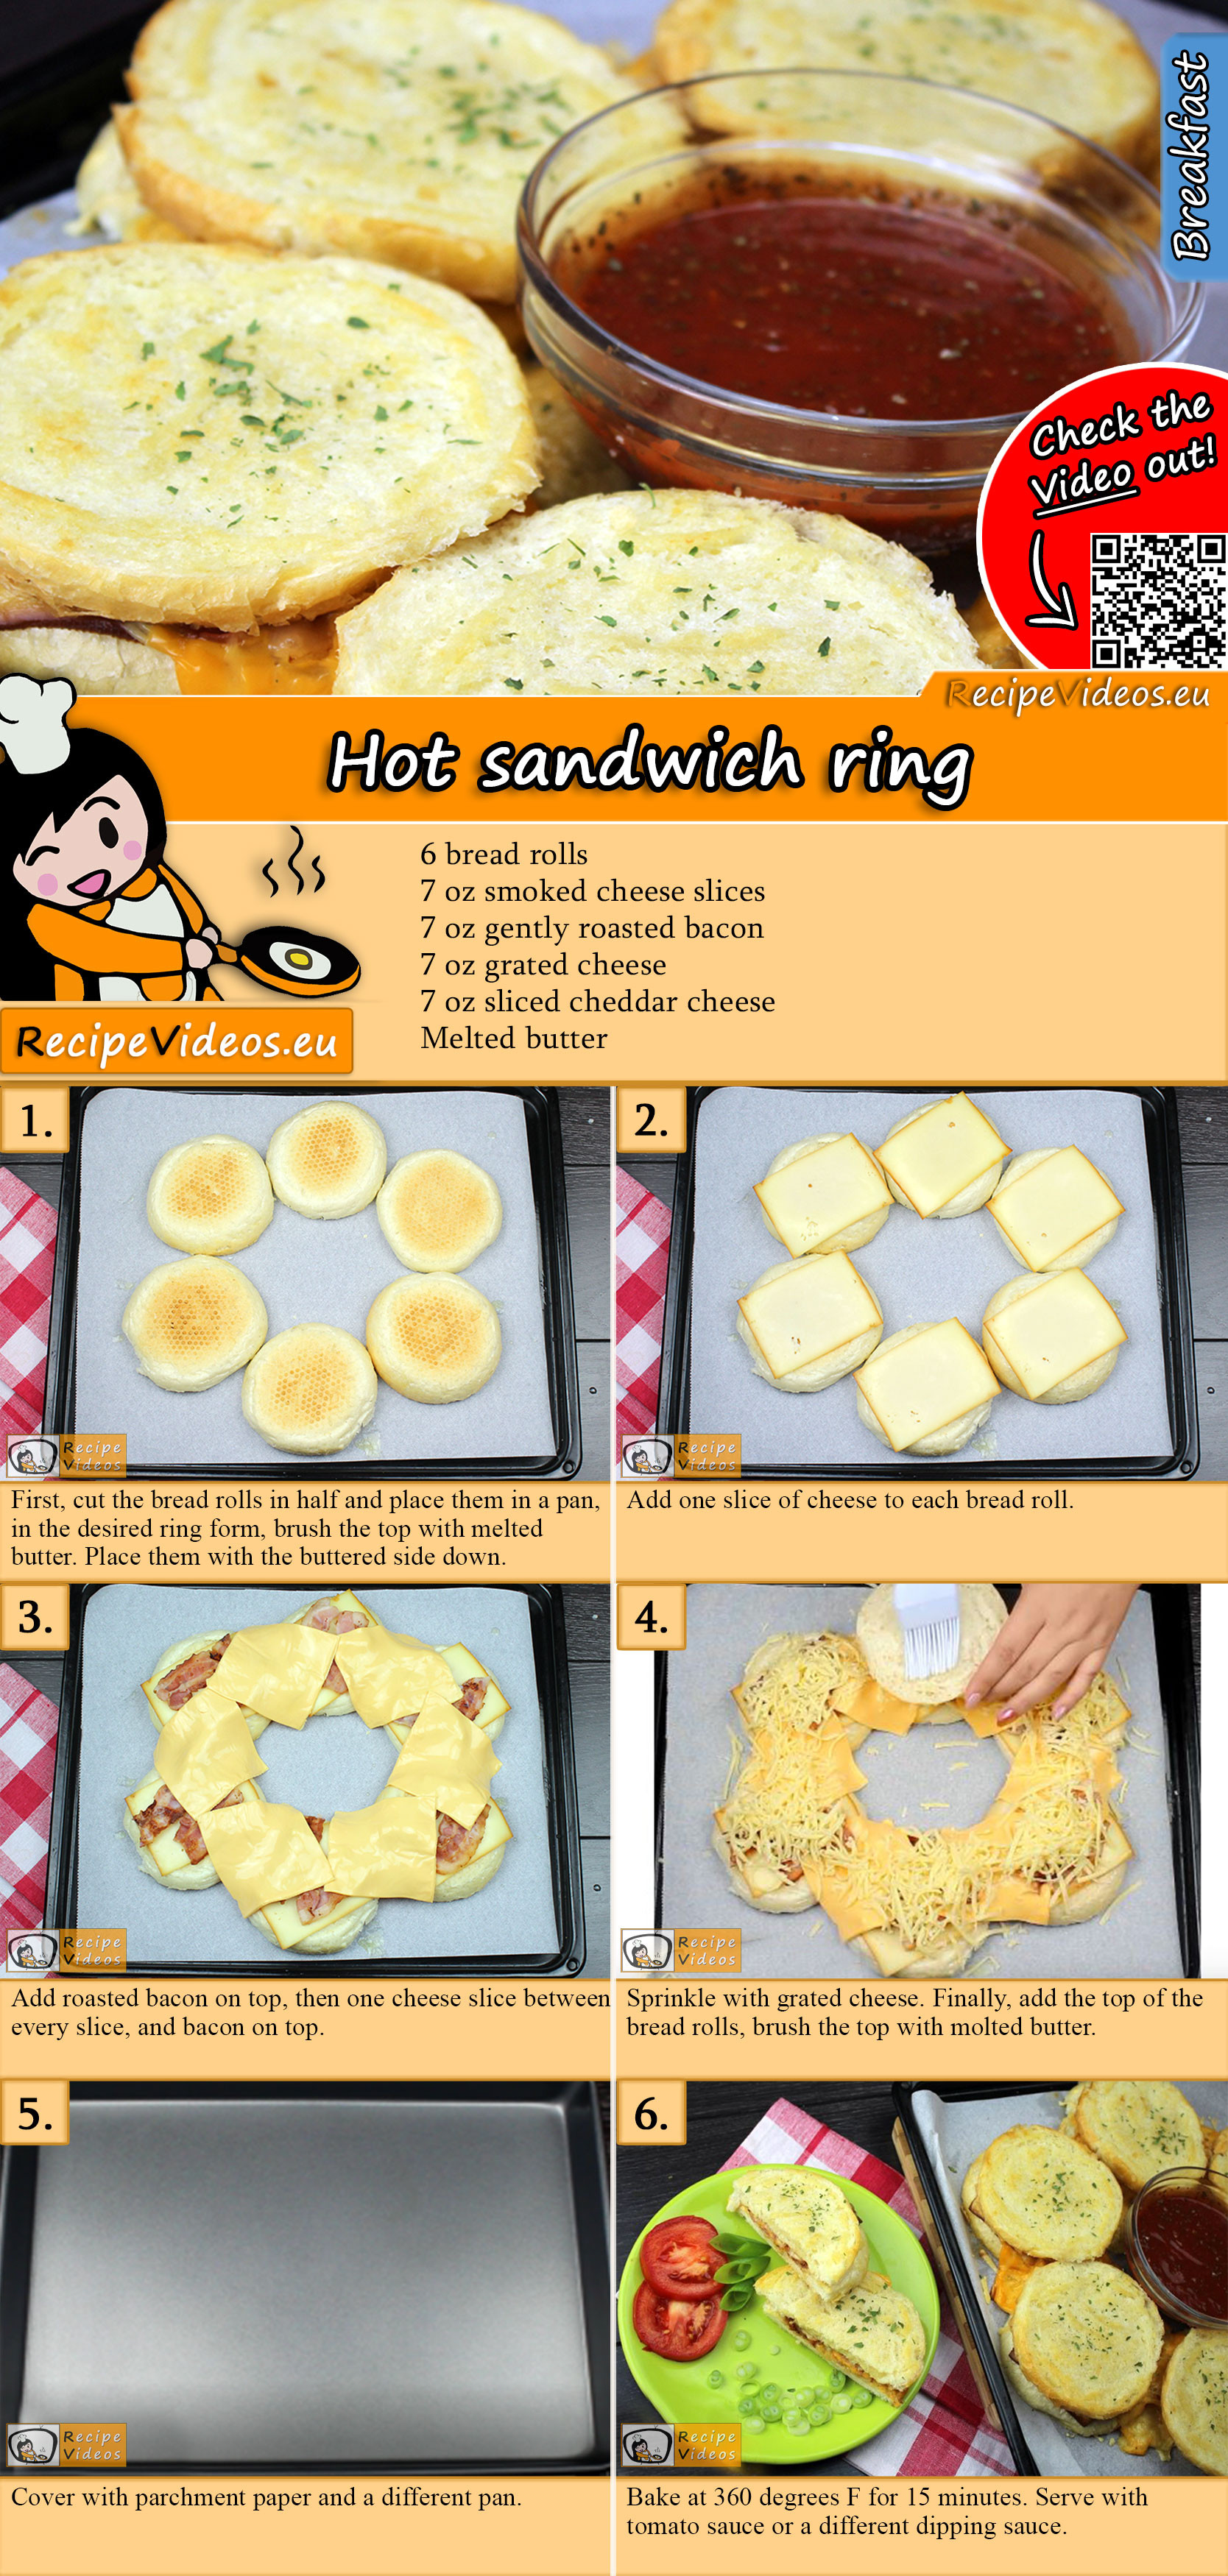 Hot sandwich ring recipe with video